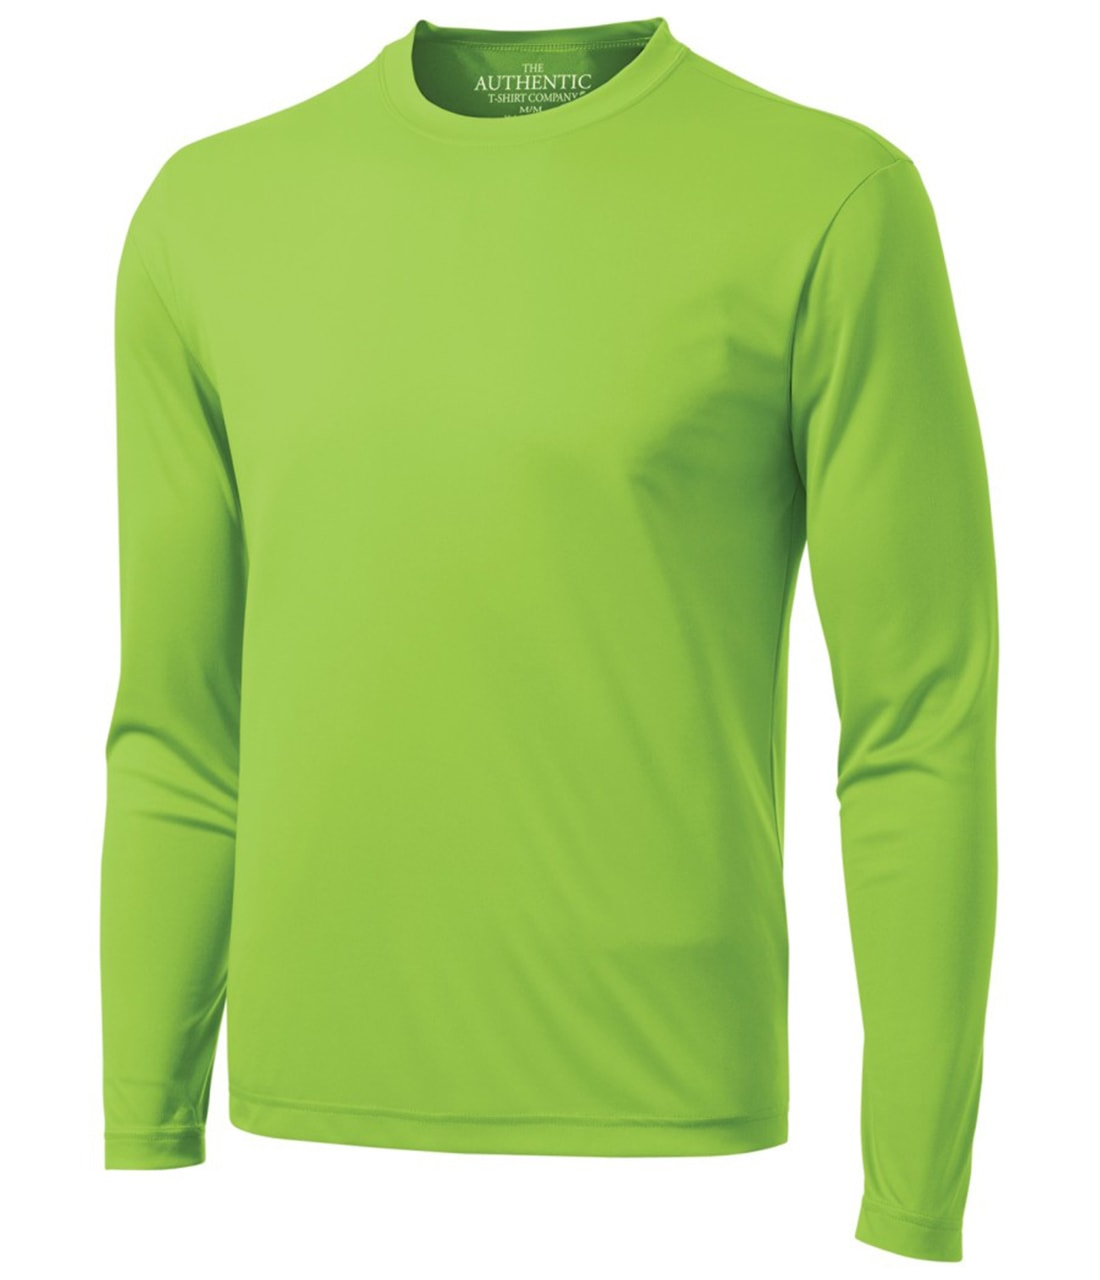 Picture of ATC Pro Team Long Sleeve T-Shirt